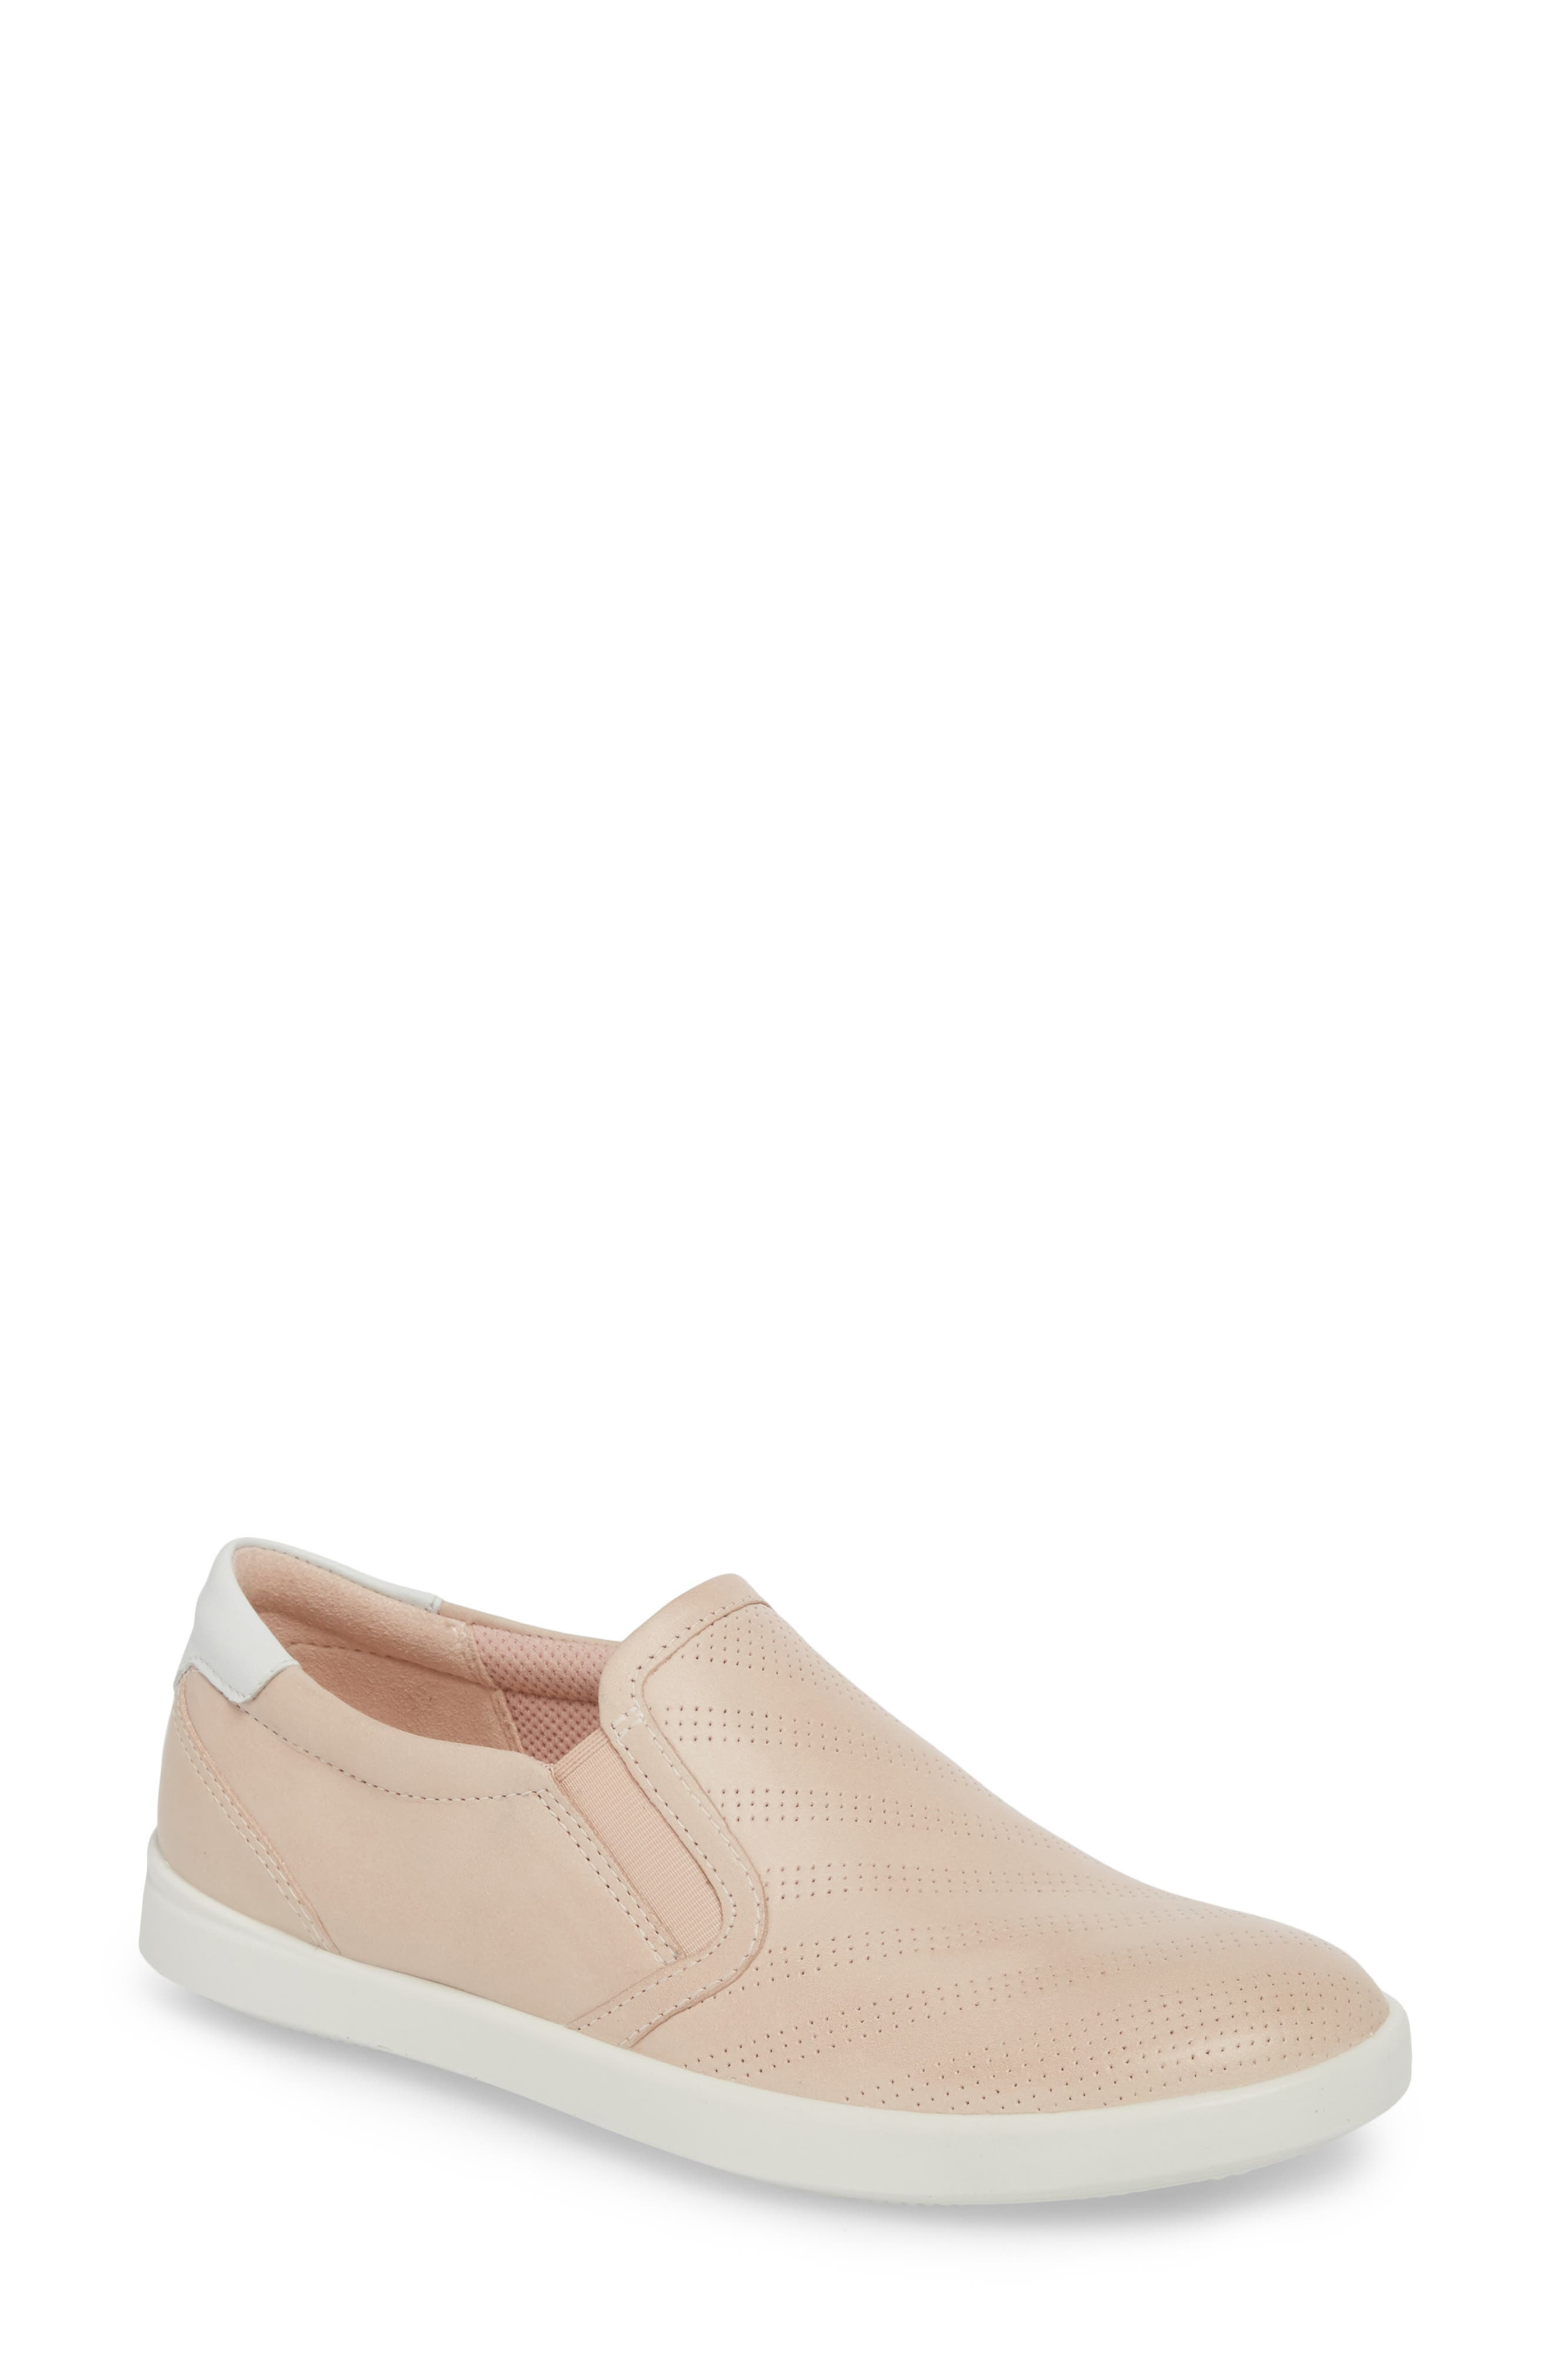 'Aimee' Slip-On Sneaker,                             Main thumbnail 1, color,                             Rose Dust Leather